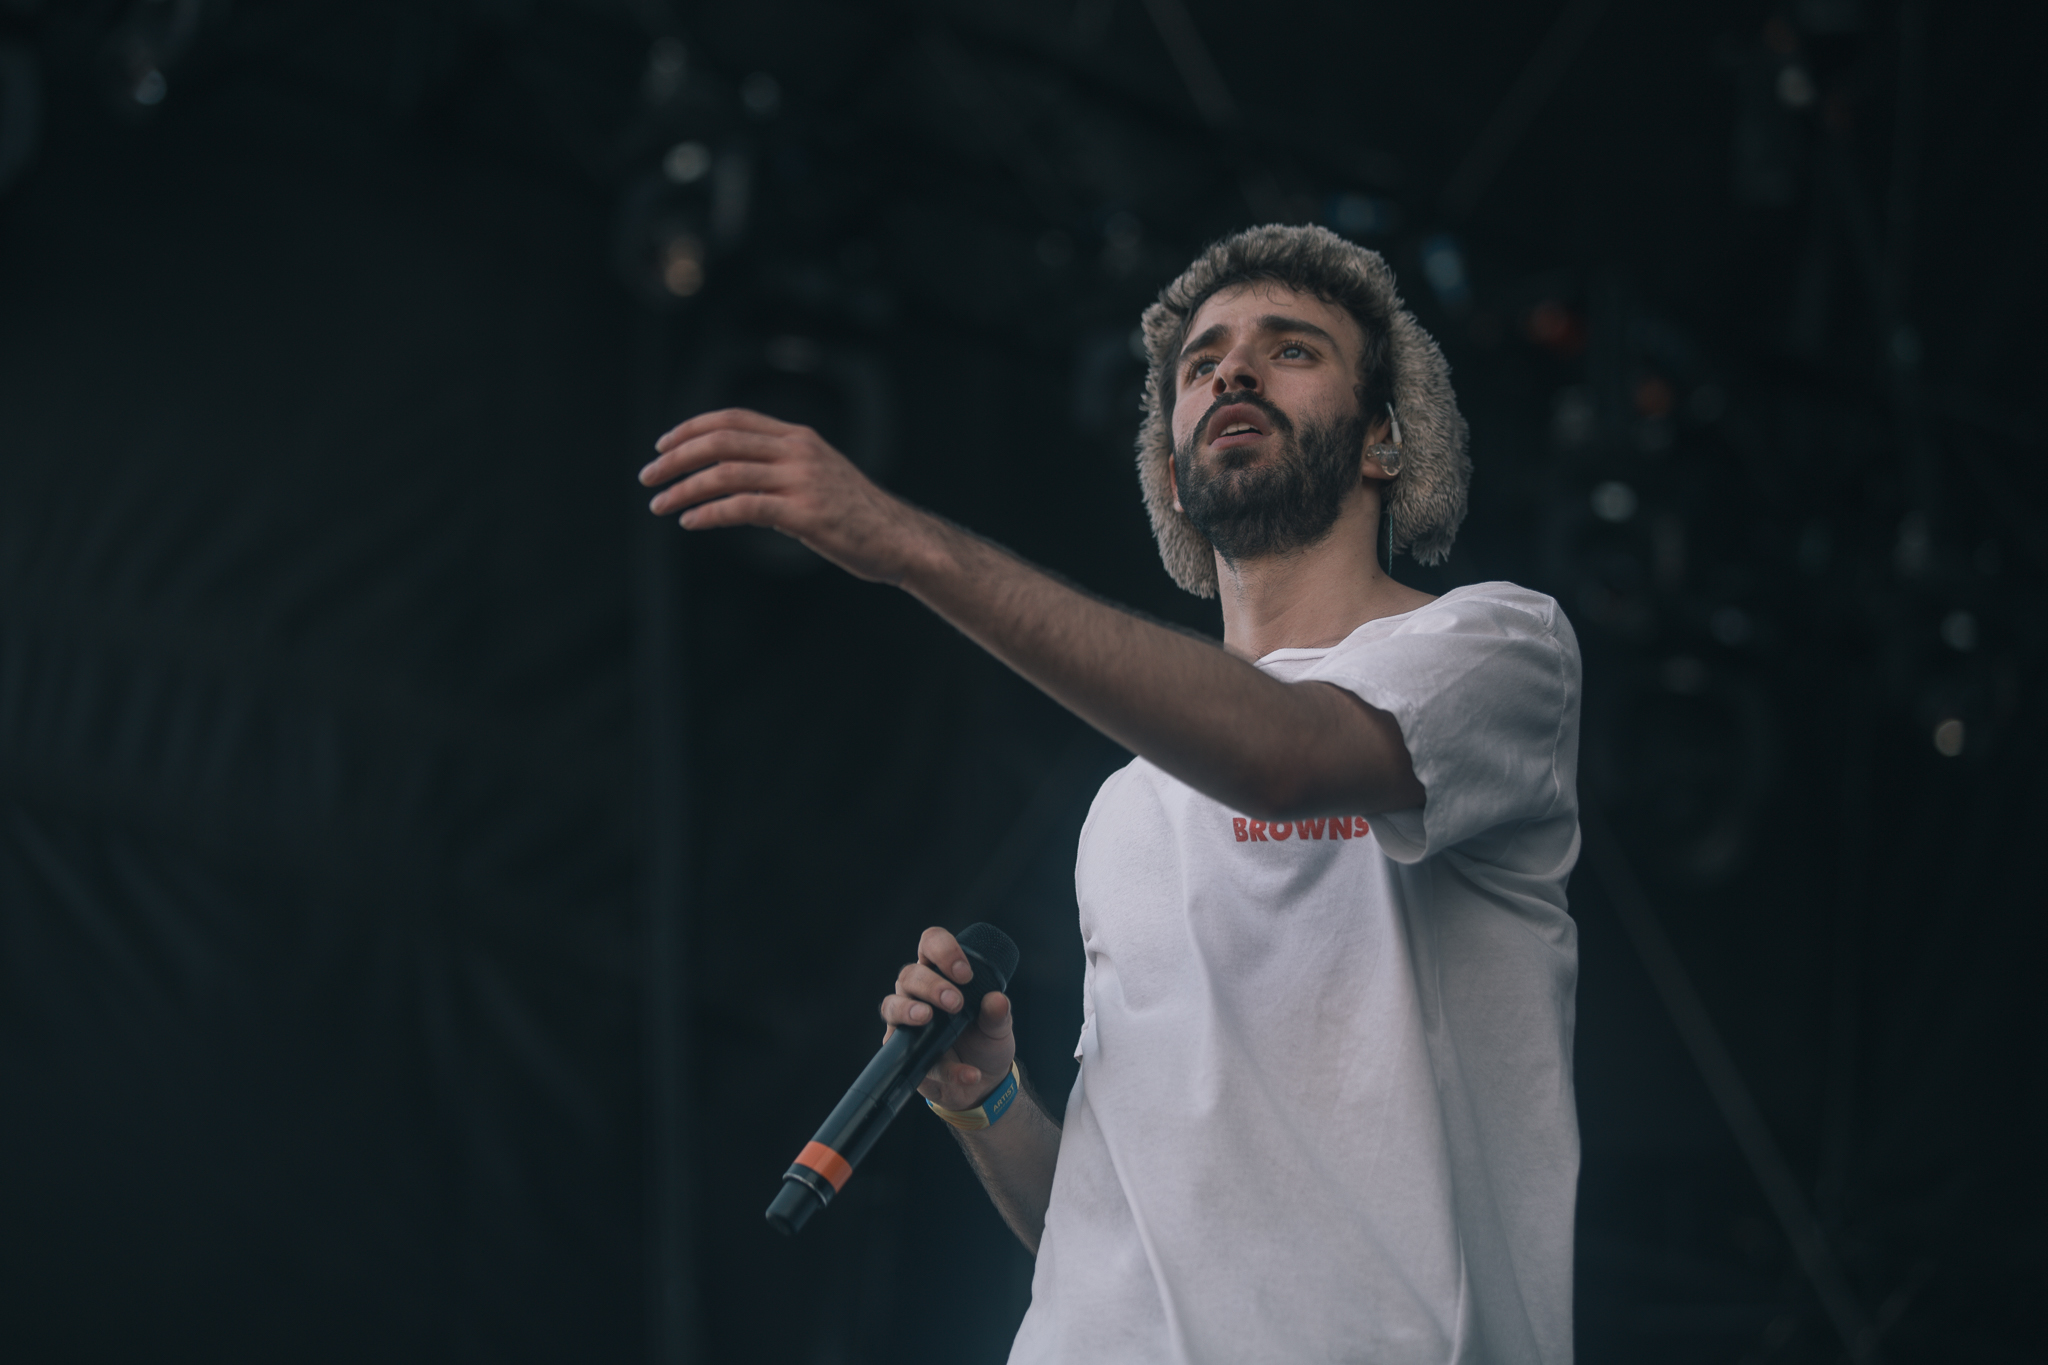 Laura Ord Photography   Austin, TX Concert Photography   AJR at Hangout Music Fest in Gulf Shores, AL